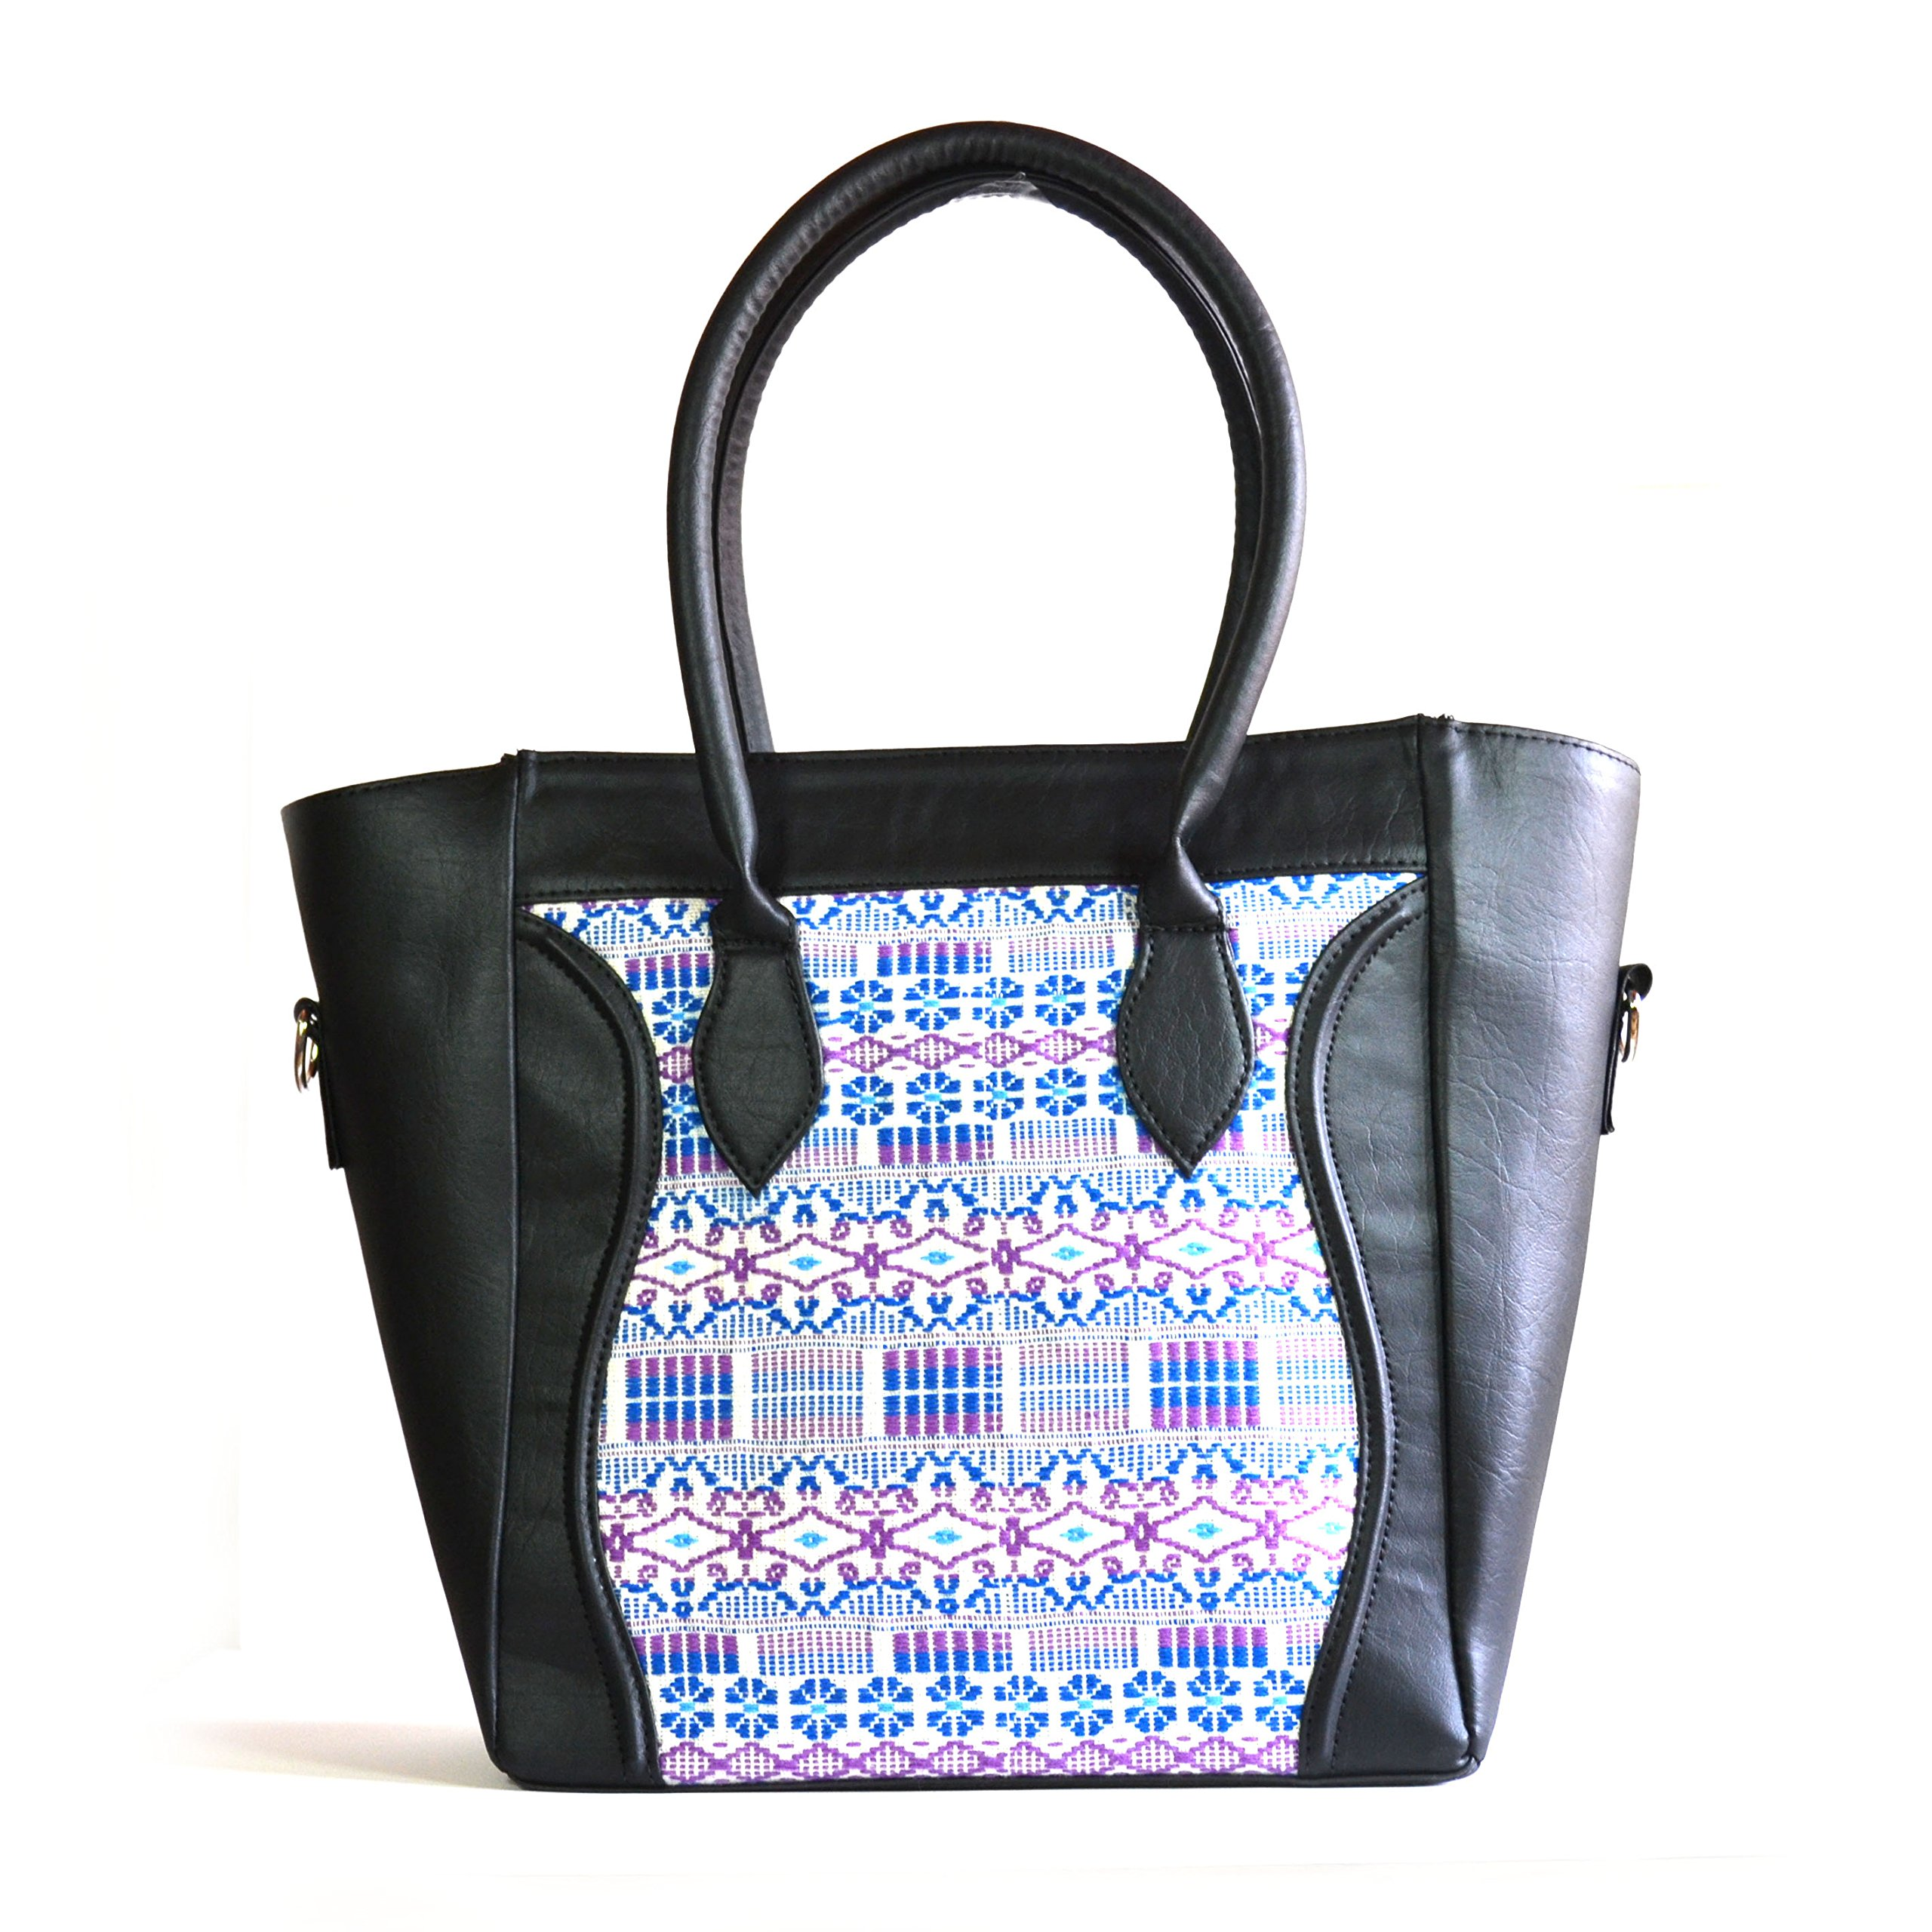 Thelma Davila Designer Handmade Top Handle Leather Handbag :: Handwoven Guatemalan Artisans (Black) by Thelma Davila